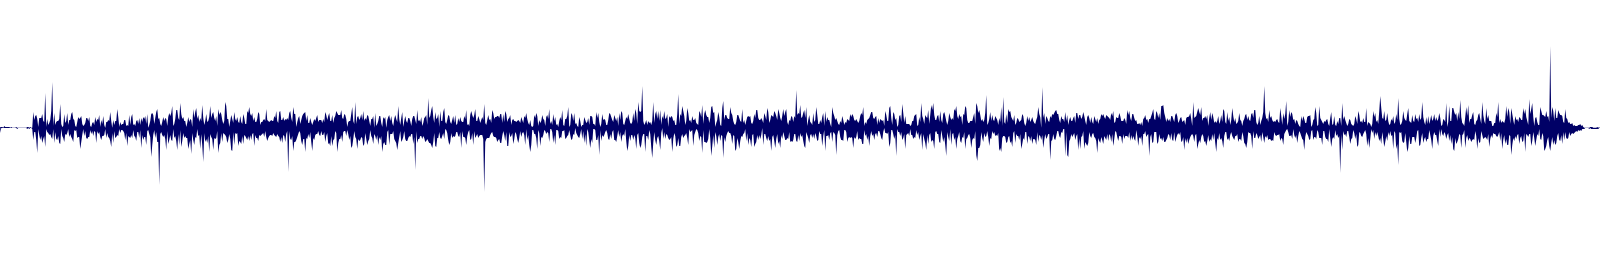 waveform of track #137776